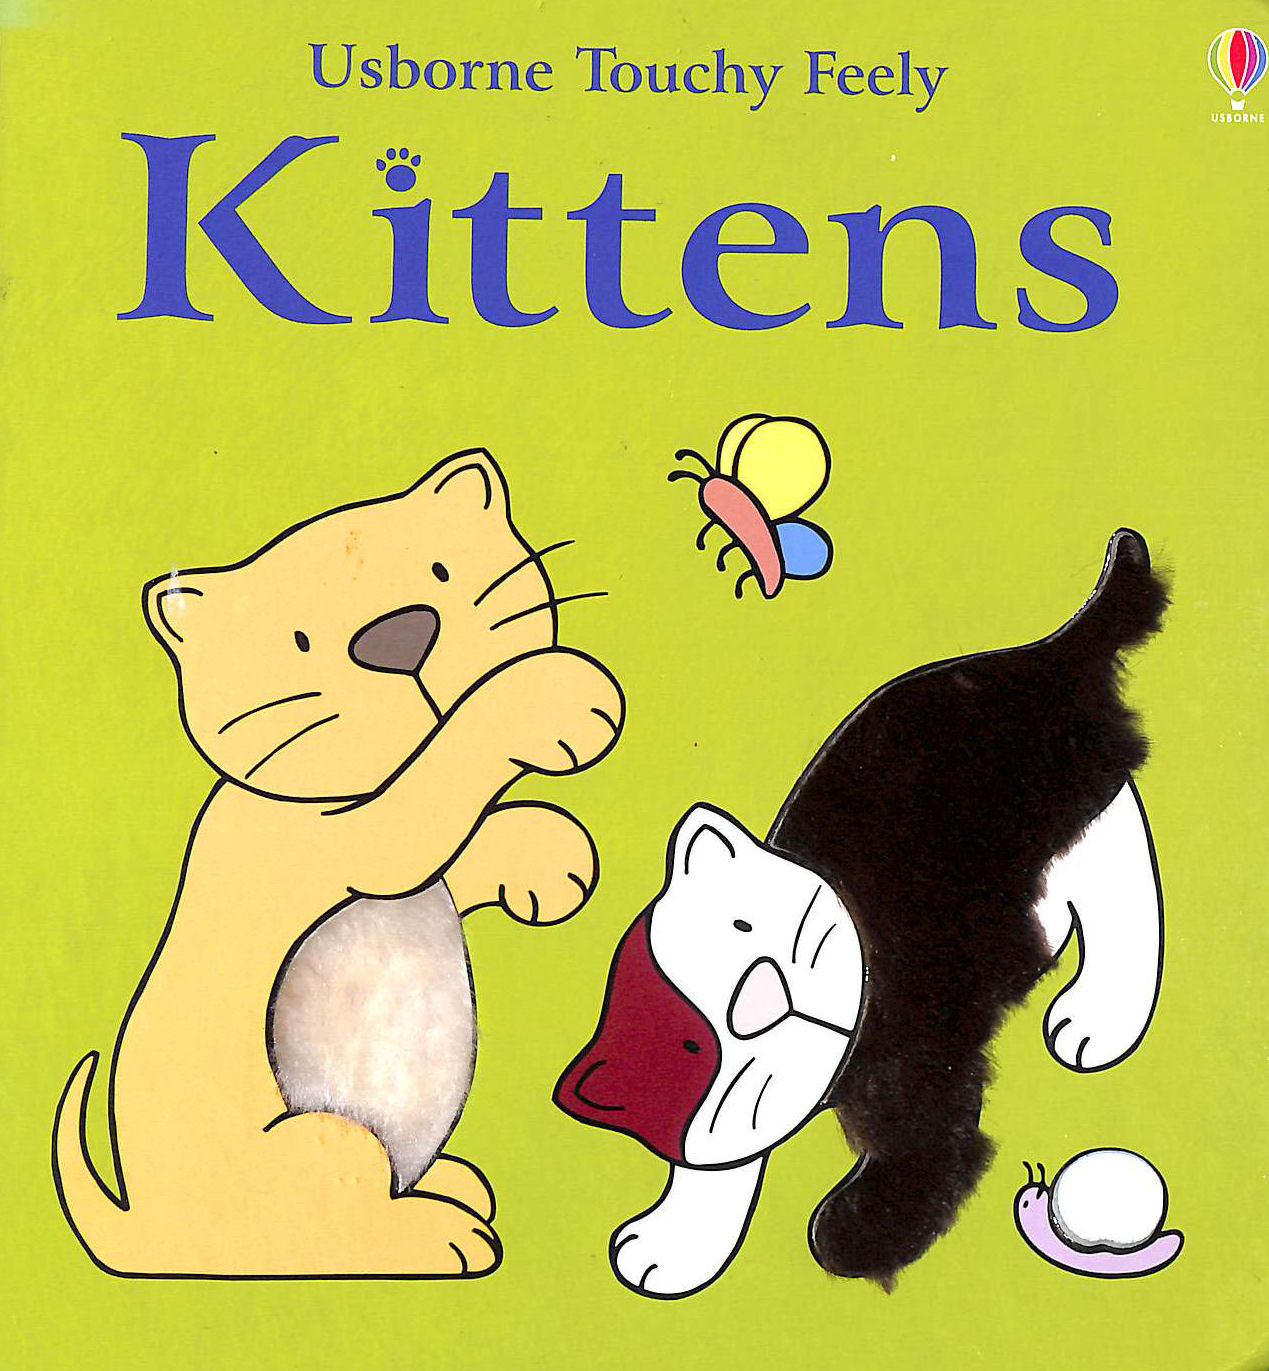 Image for The Usborne Big Touchy Feely Book of Kittens (Touchy-Feely Board Books)